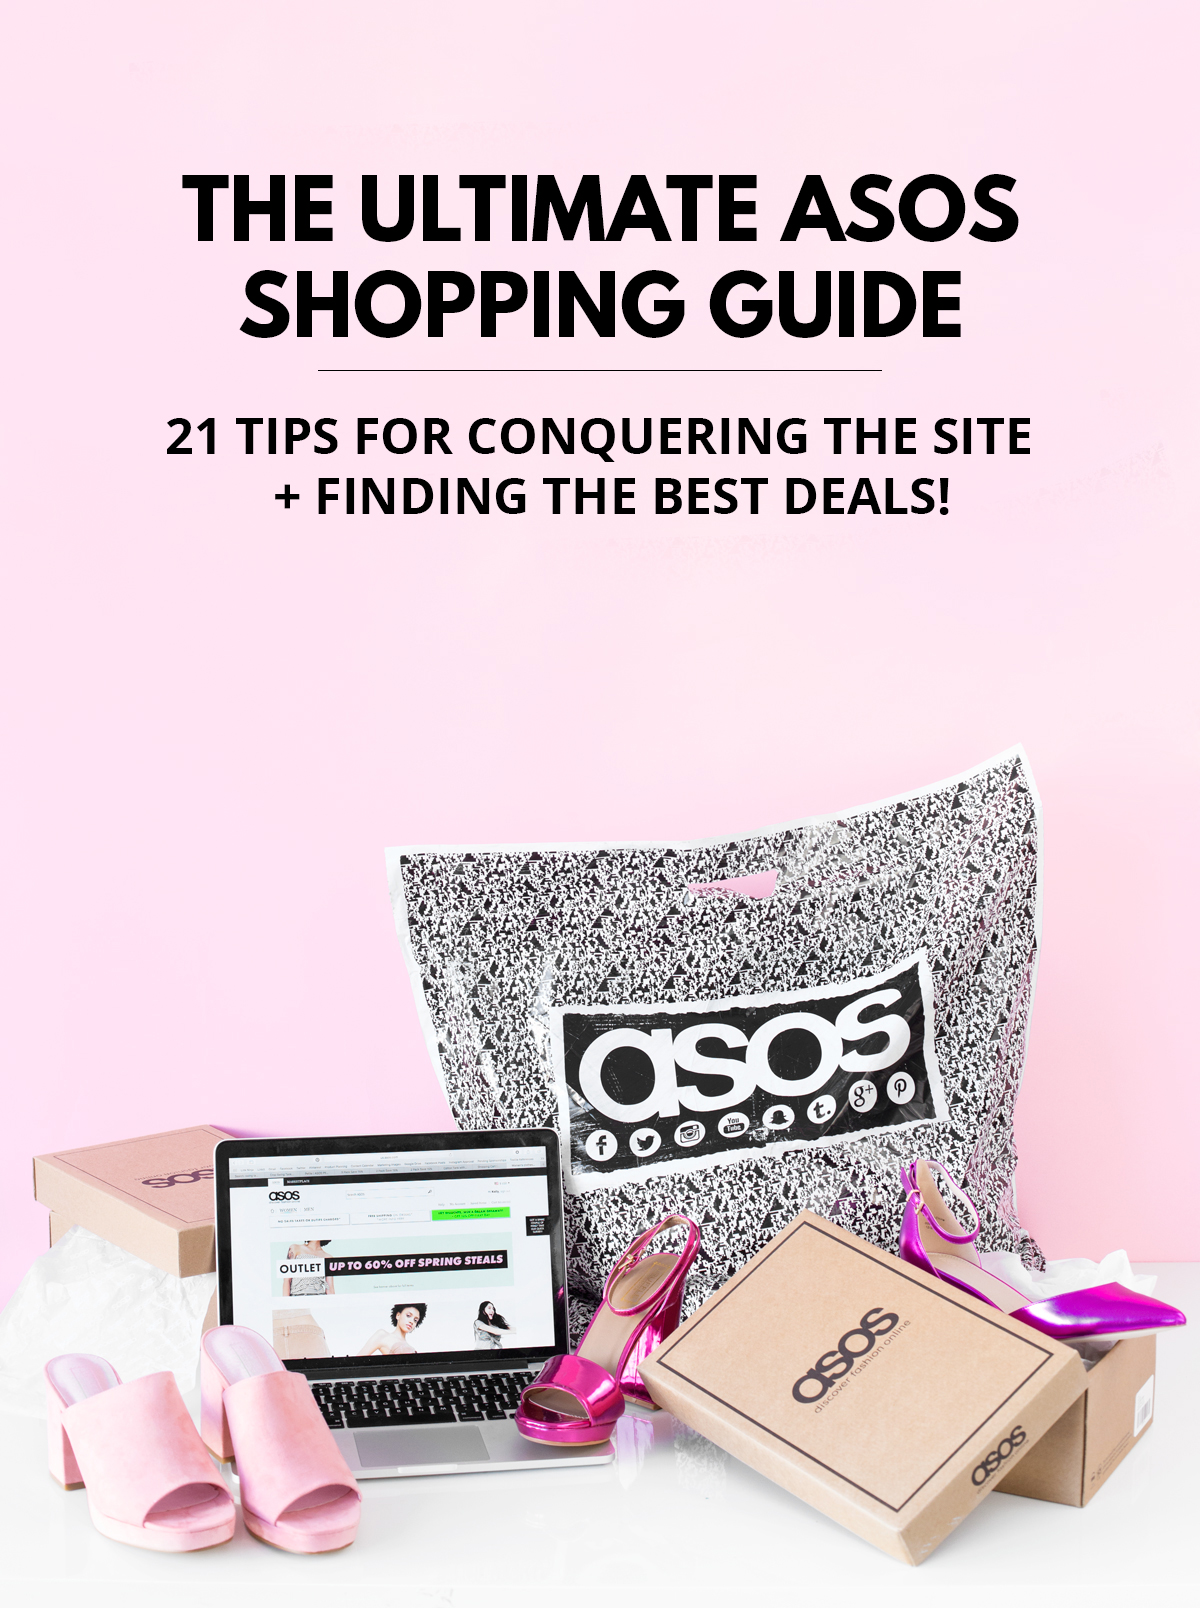 95a916c393da4a My Ultimate ASOS Shopping Guide: 21 Tips For Conquering The Site + ...